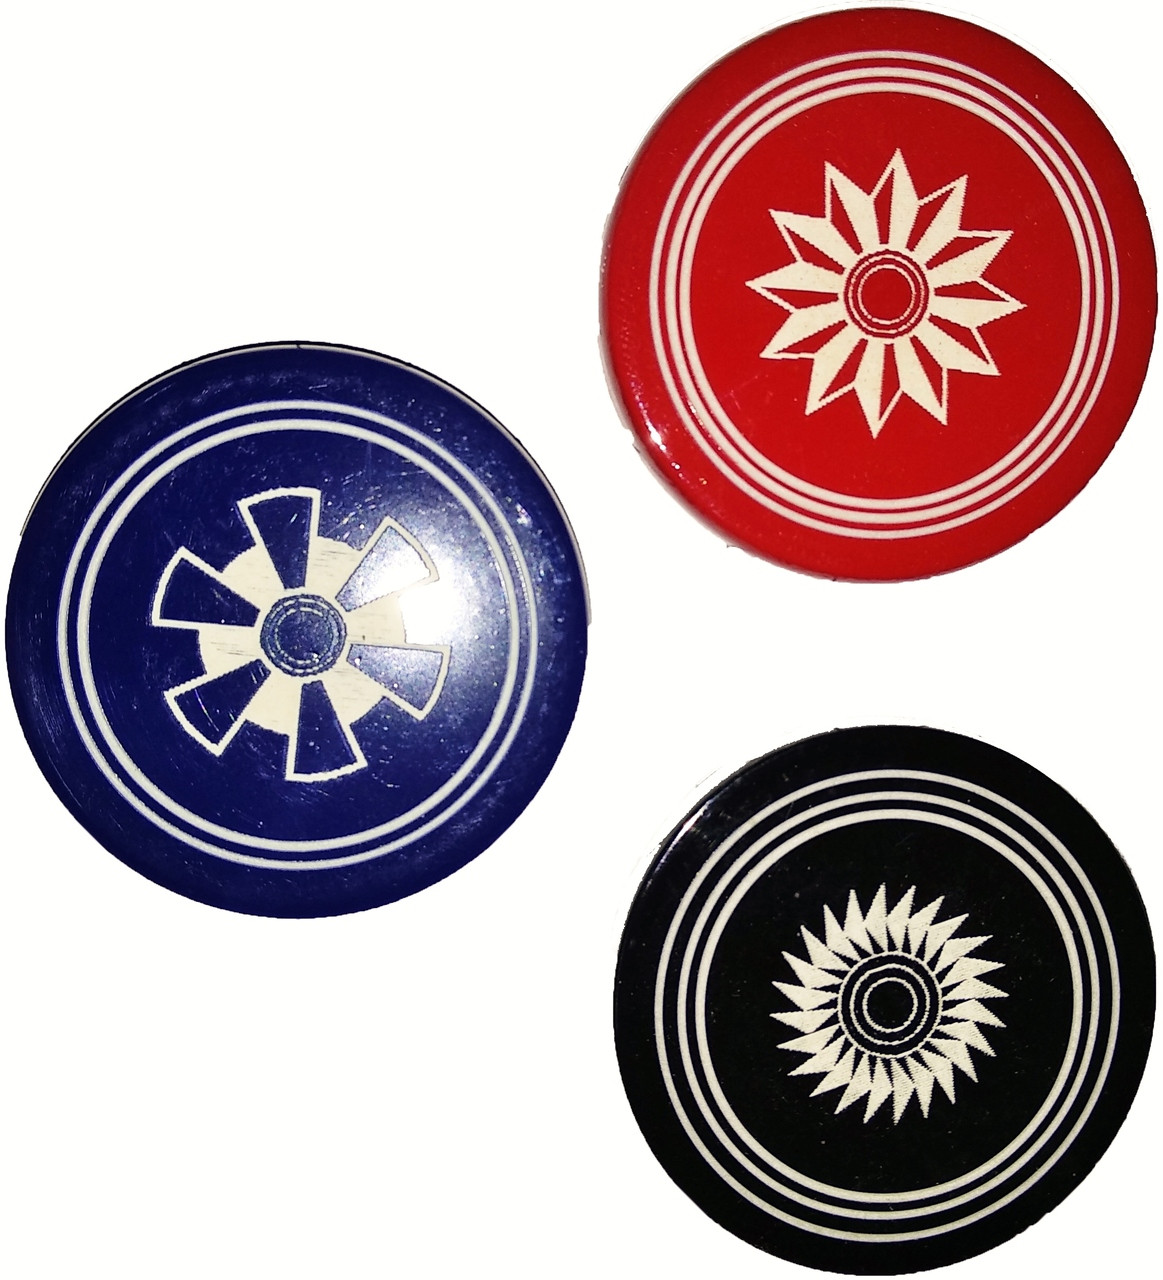 Championship Carrom Strikers (Set of 2) Regulation Approved